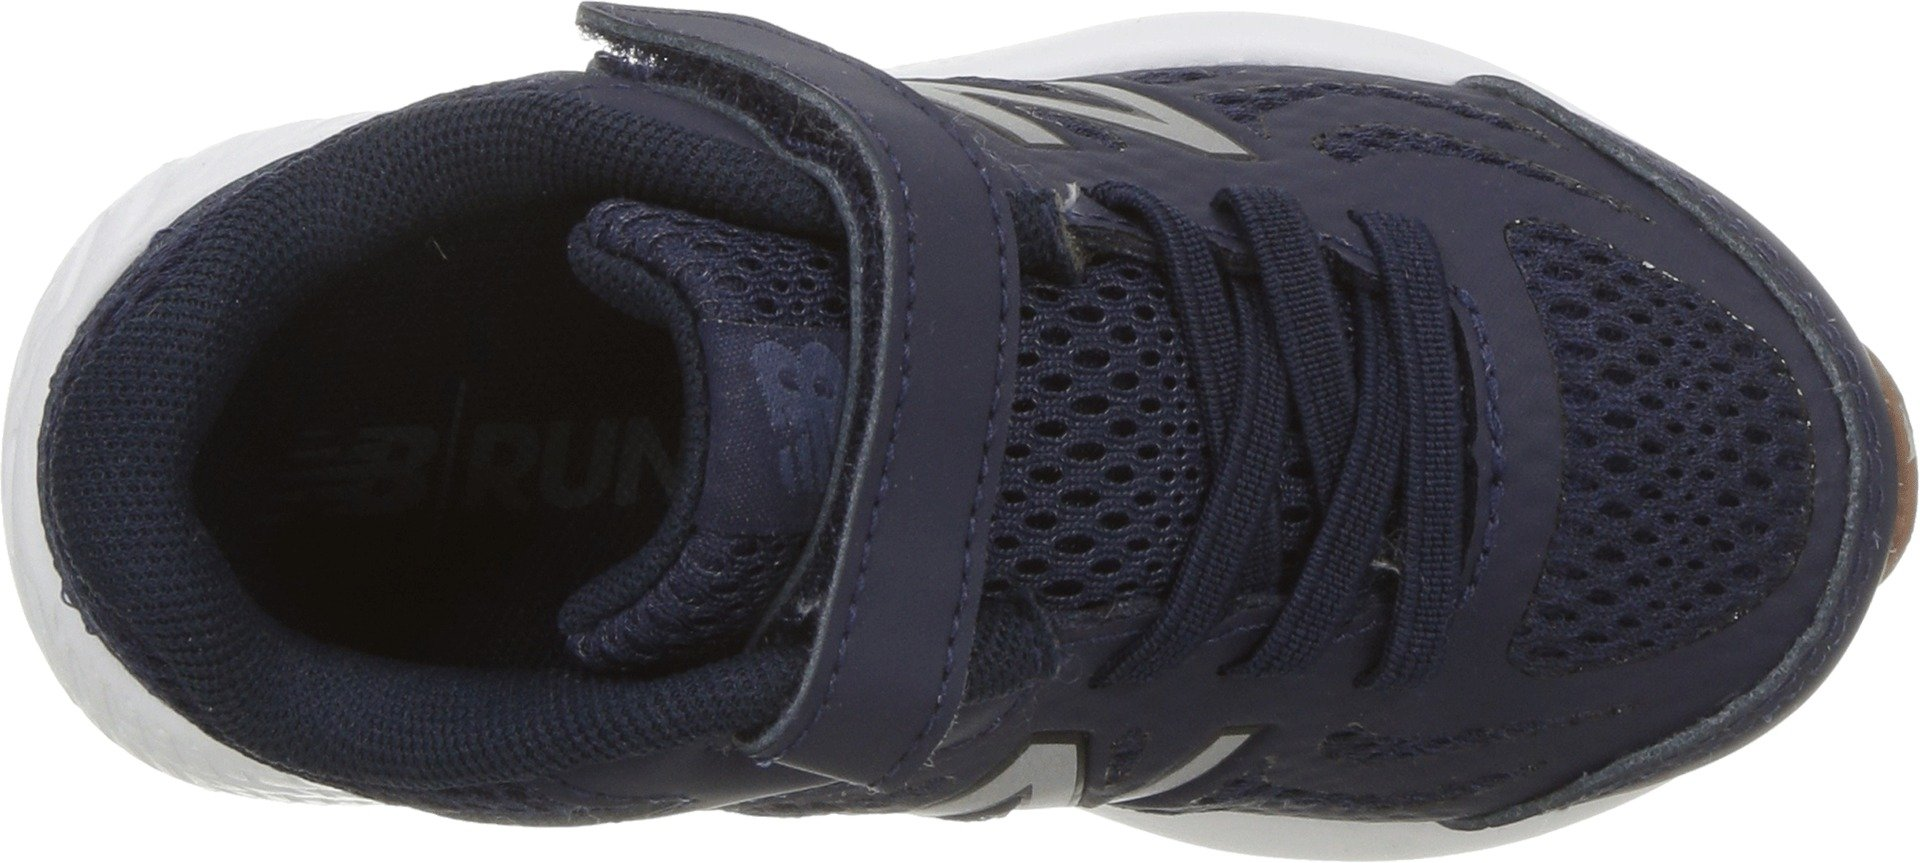 New Balance Boys' 519v1 Hook and Loop Running Shoe Pigment/Black 2 M US Infant by New Balance (Image #2)